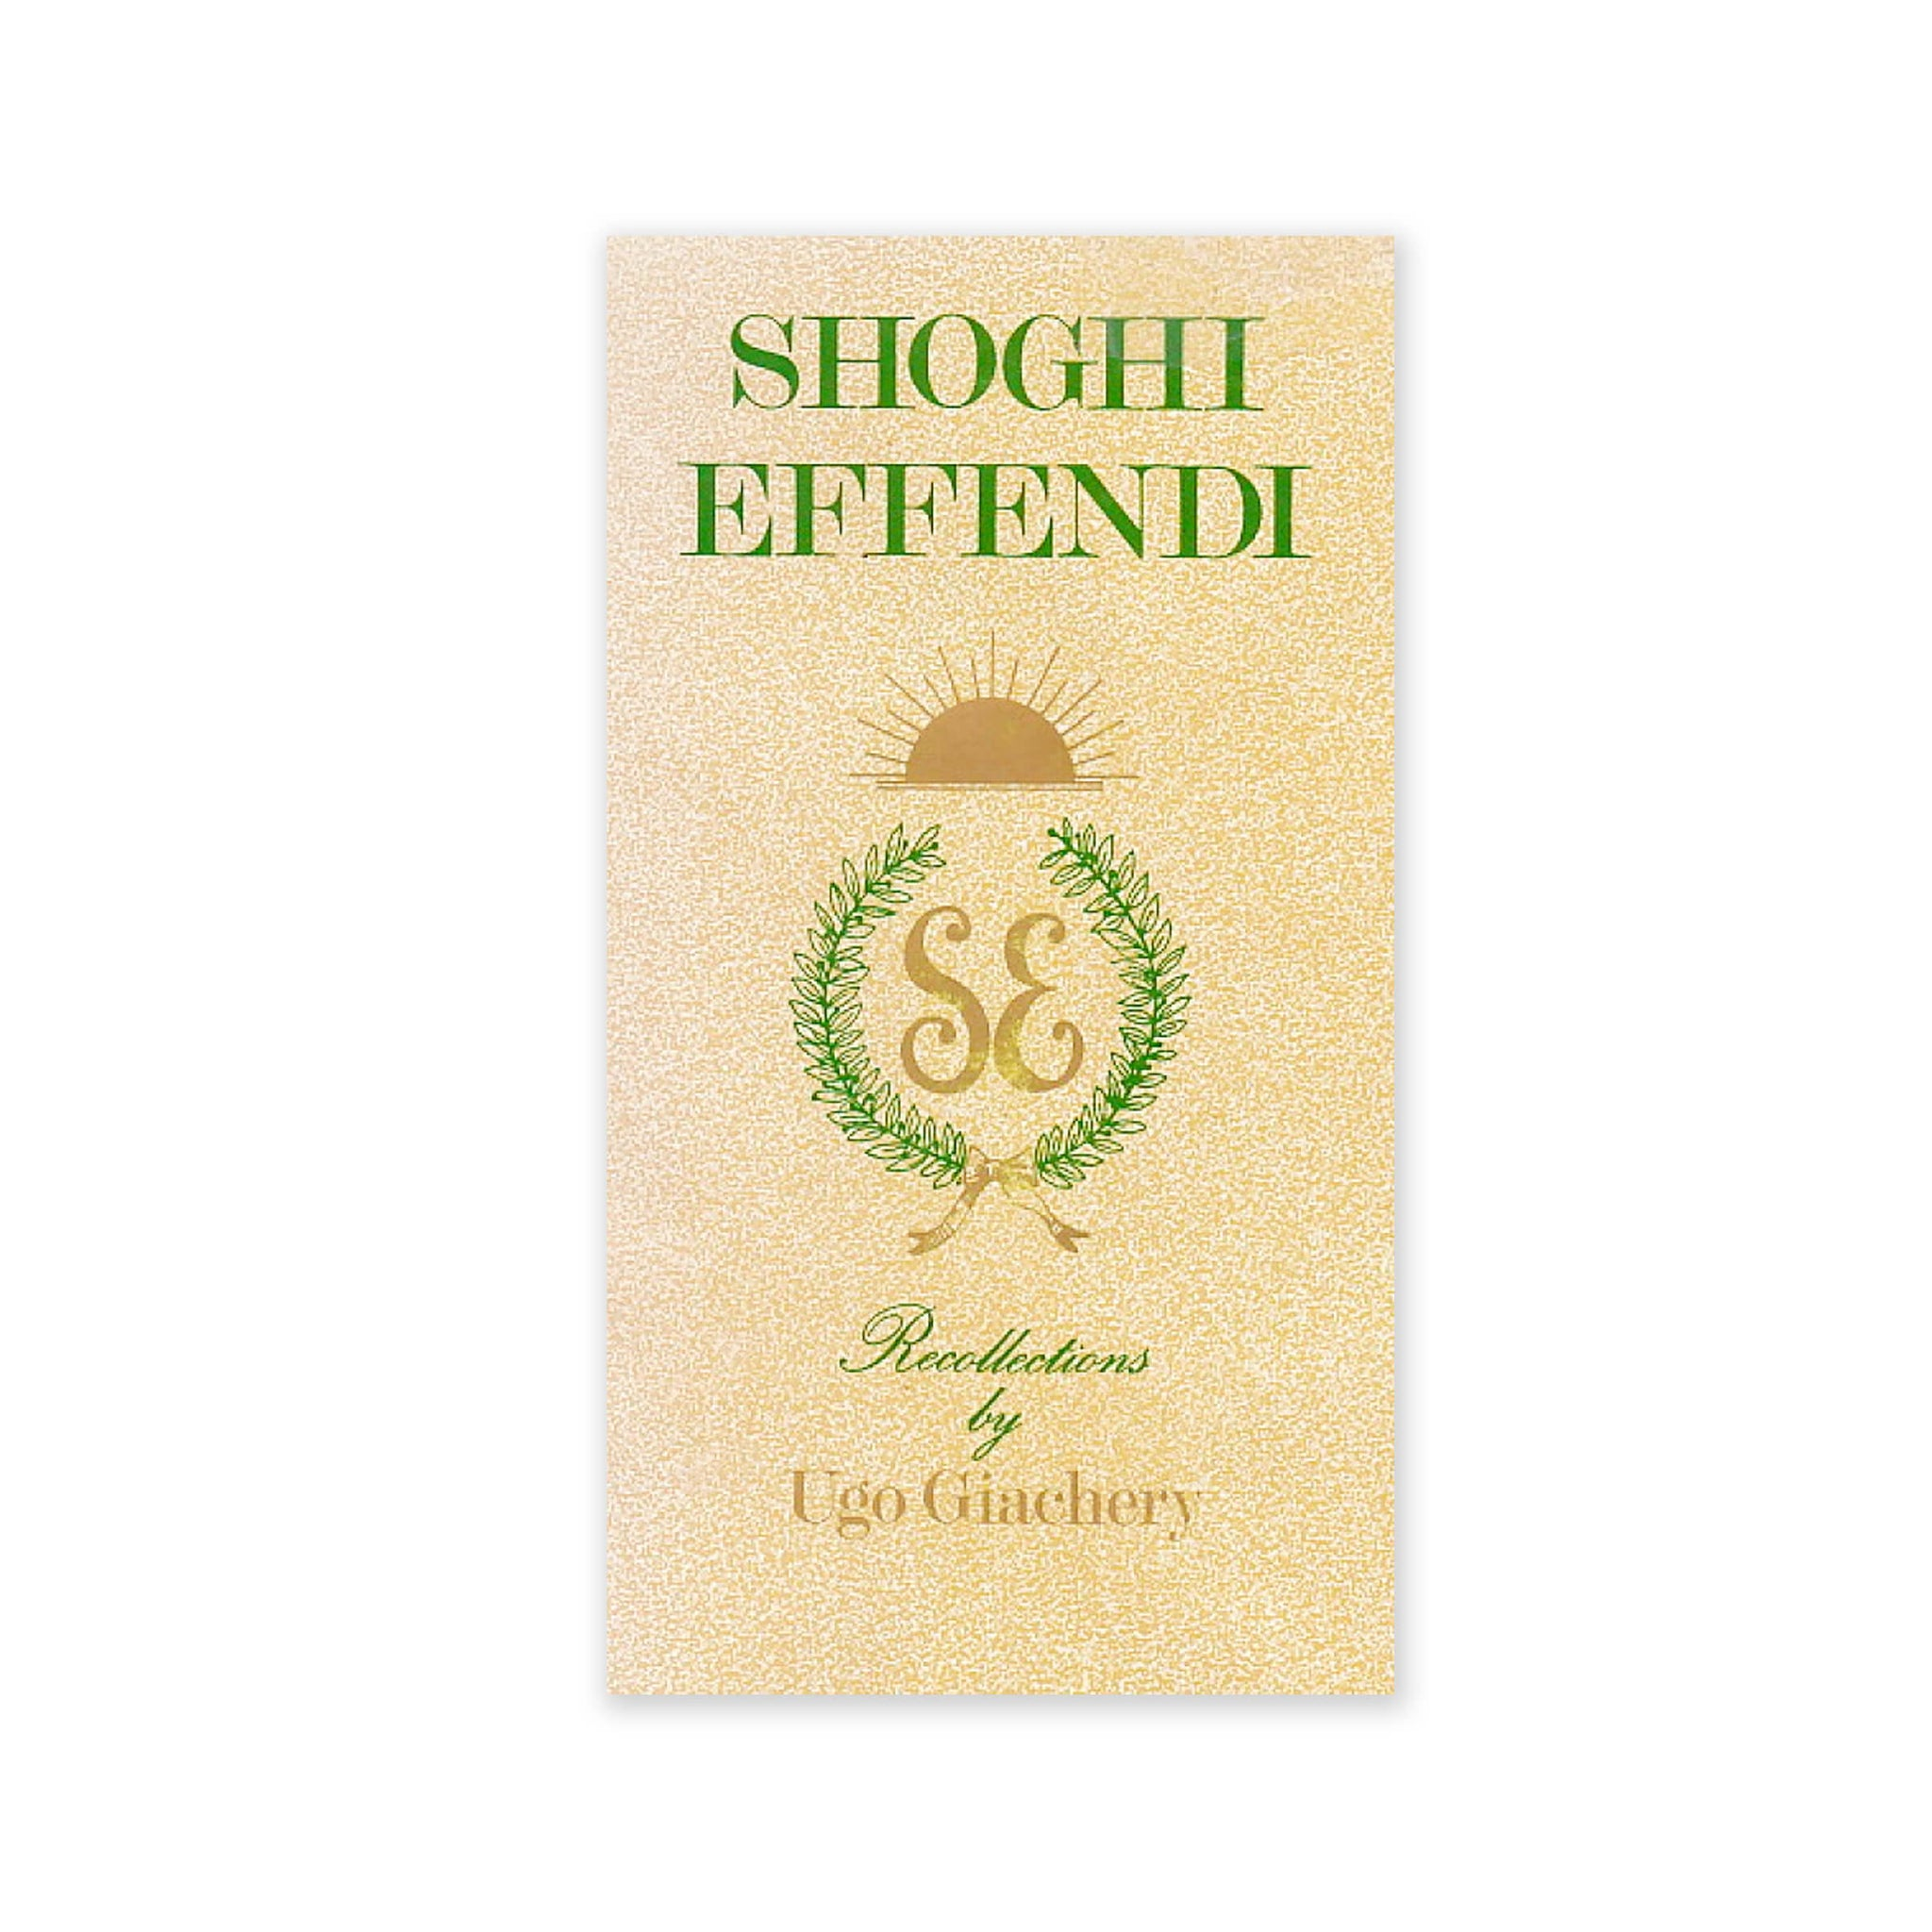 Shoghi Effendi - Recollections